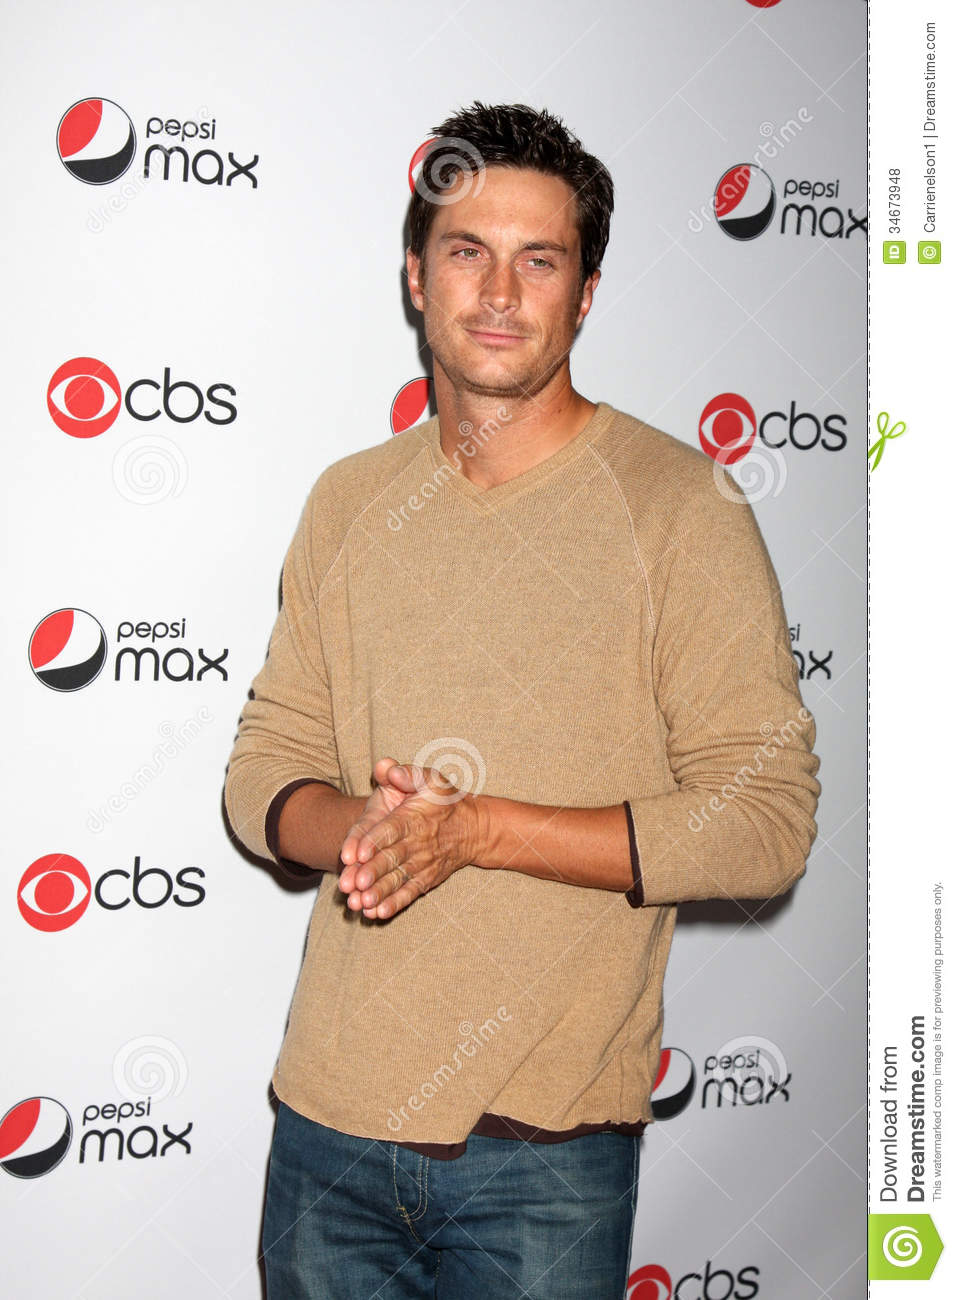 oliver hudson pittoliver hudson on brad pitt, oliver hudson kurt russell, oliver hudson sons, oliver hudson wife, oliver hudson pitt, oliver hudson height, oliver hudson instagram, oliver hudson wiki, oliver hudson and kate hudson, oliver hudson and wyatt russell, oliver hudson, oliver hudson nashville, oliver hudson kelley, oliver hudson twitter, oliver hudson erinn bartlett, oliver hudson scream queens, oliver hudson family, oliver hudson goldie hawn, oliver hudson rules of engagement, oliver hudson tennis